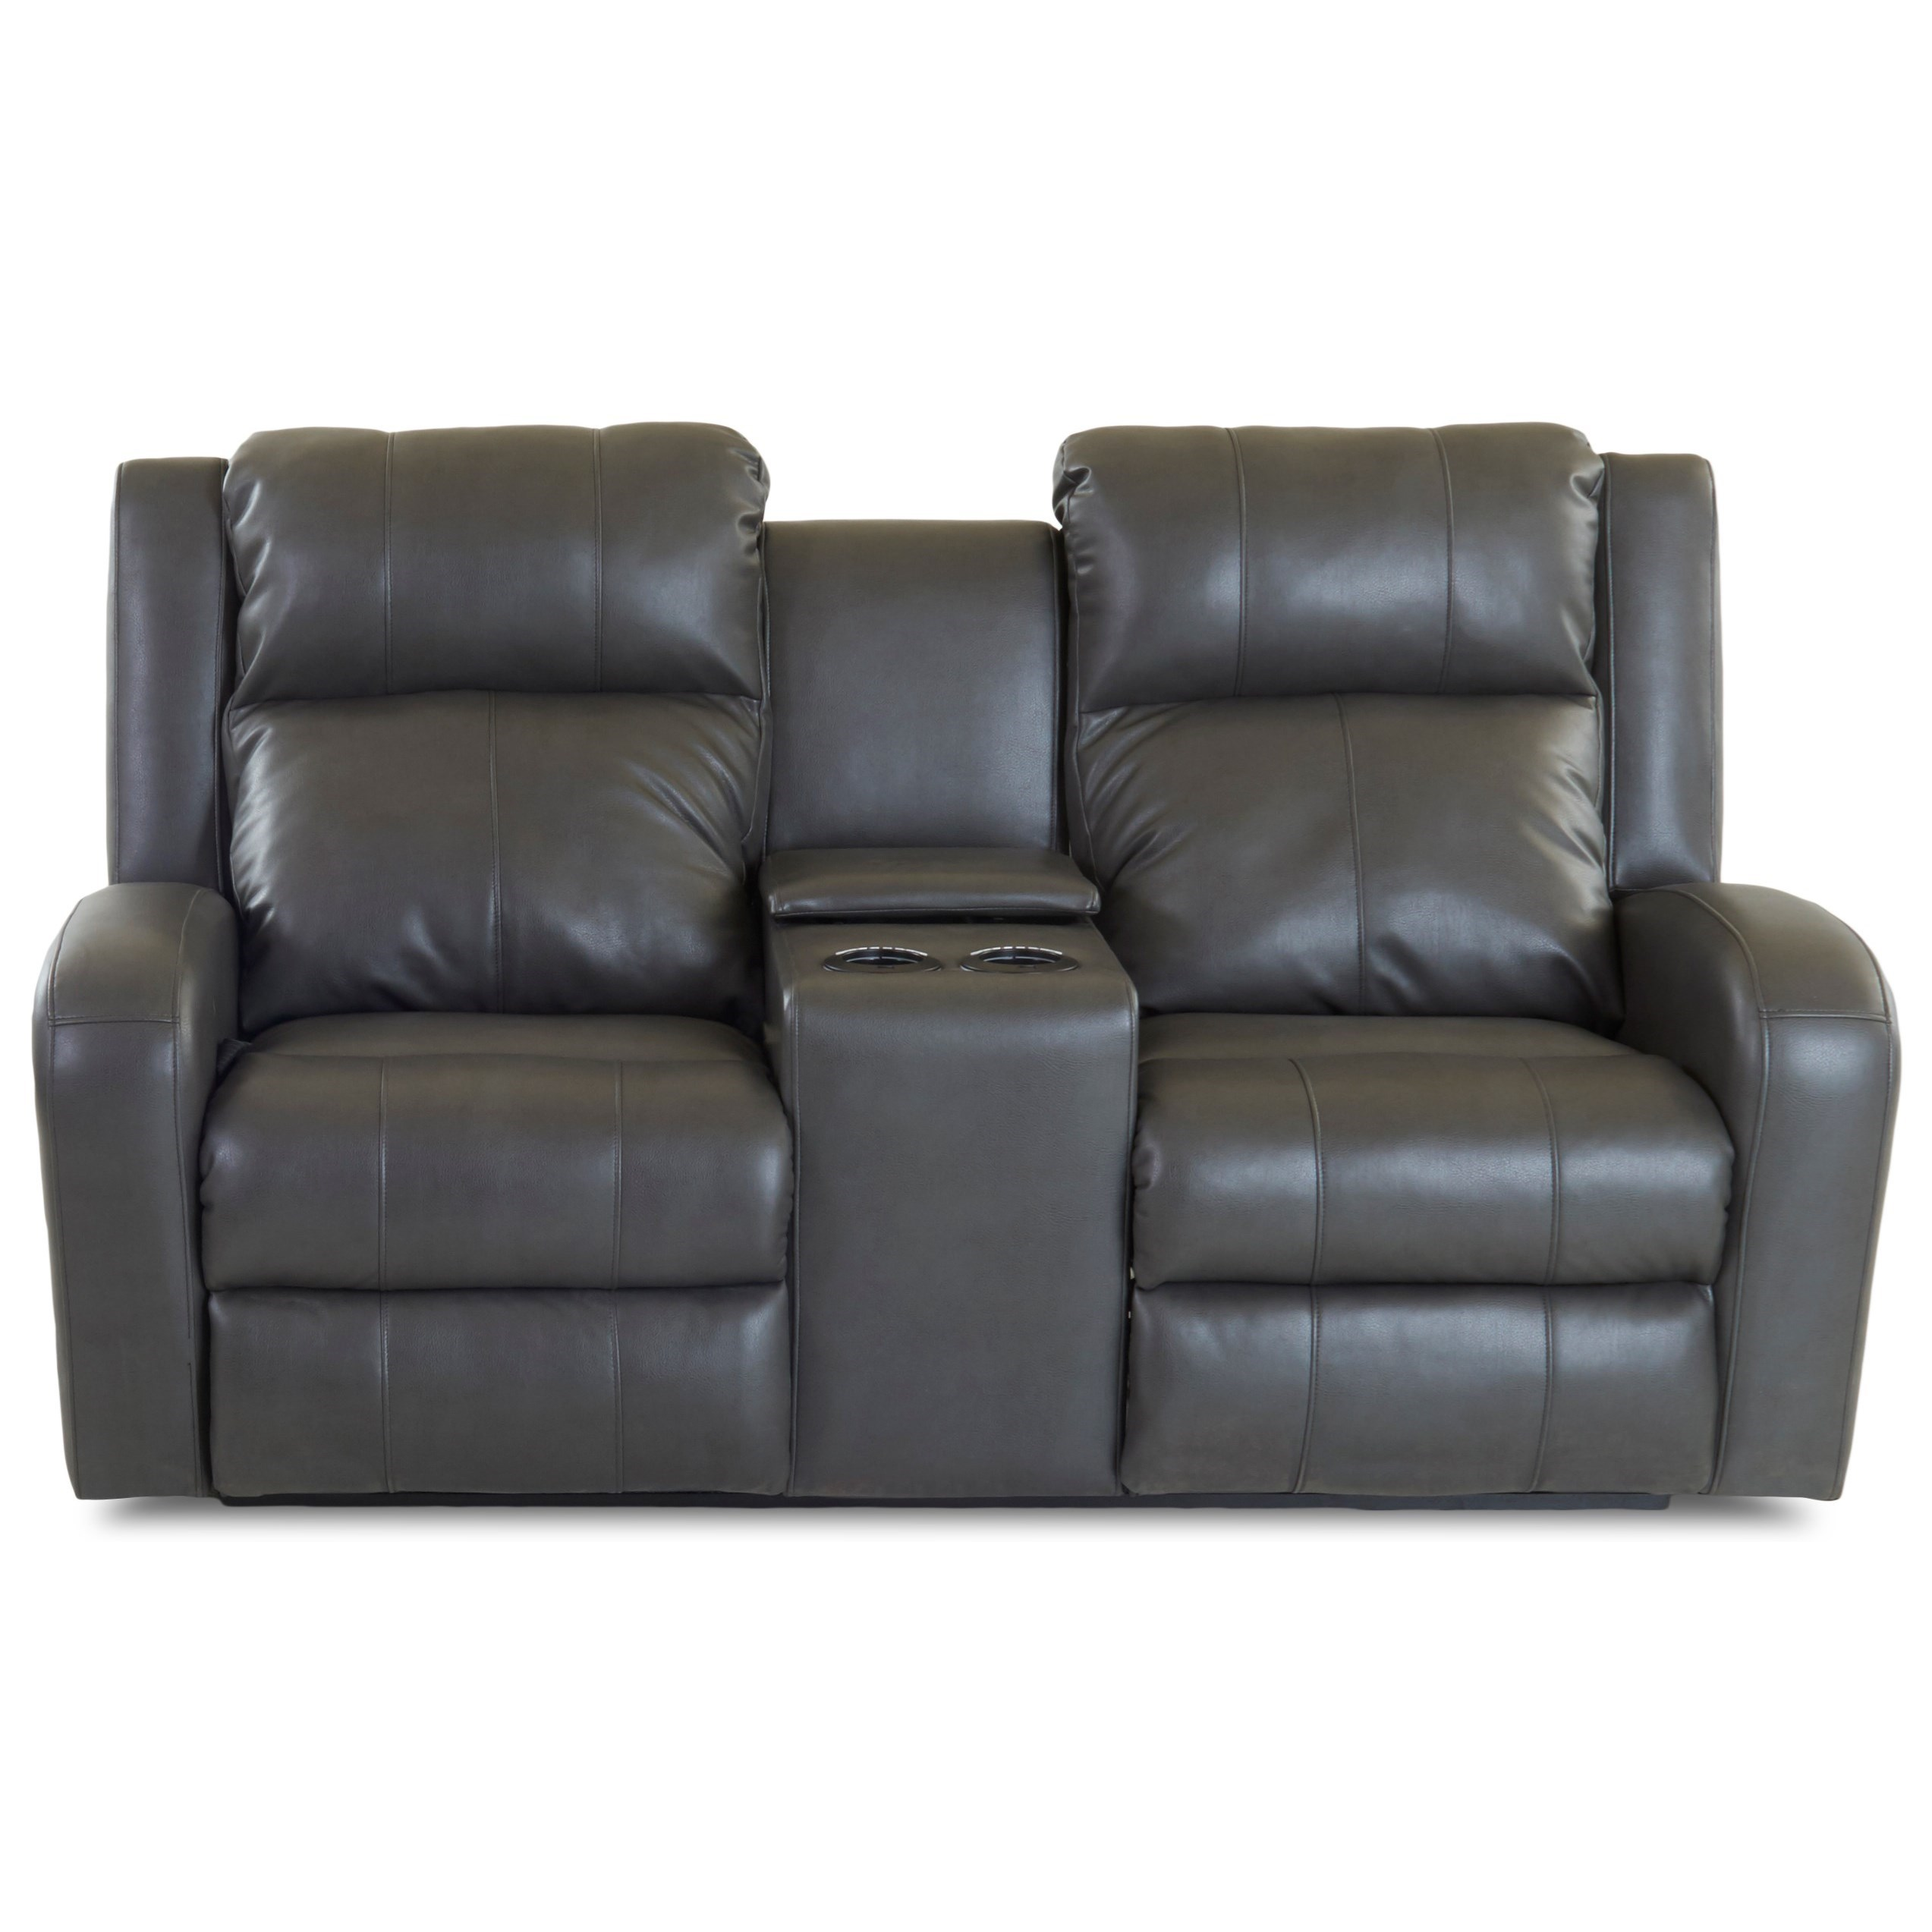 robinson and leather sofa en ingles como se escribe casual power reclining loveseat with adjustable